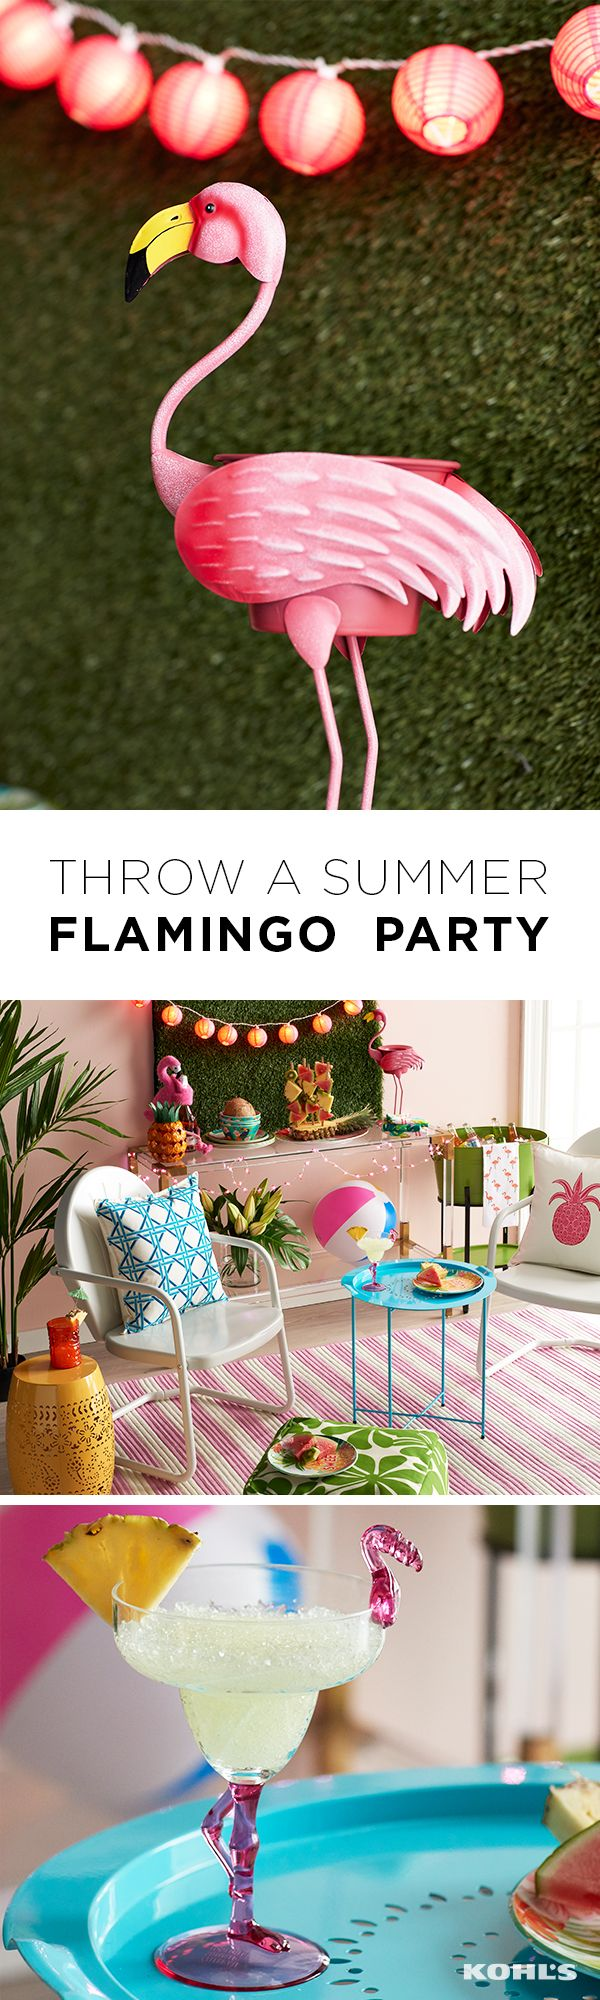 If you don't throw a flamingo party, is it even summer? The flamingo theme is bright, fun and perfect for outdoor or indoor birthday (or any day) parties. Make sure to decorate with as many flamingos as you can get and accent with turquoise, yellow and lime green accessories. Bring on the margaritas! Get your home ready for summer with Kohl's.